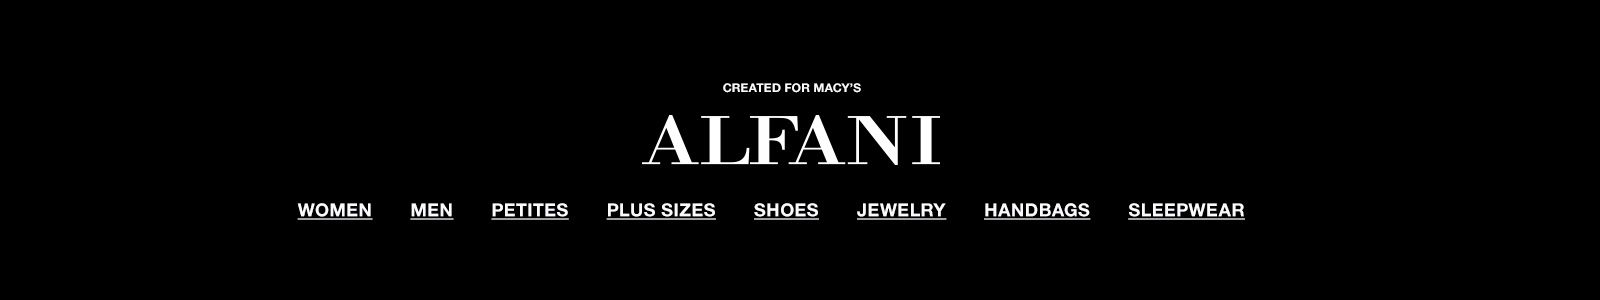 Created For Macy's, Alfani